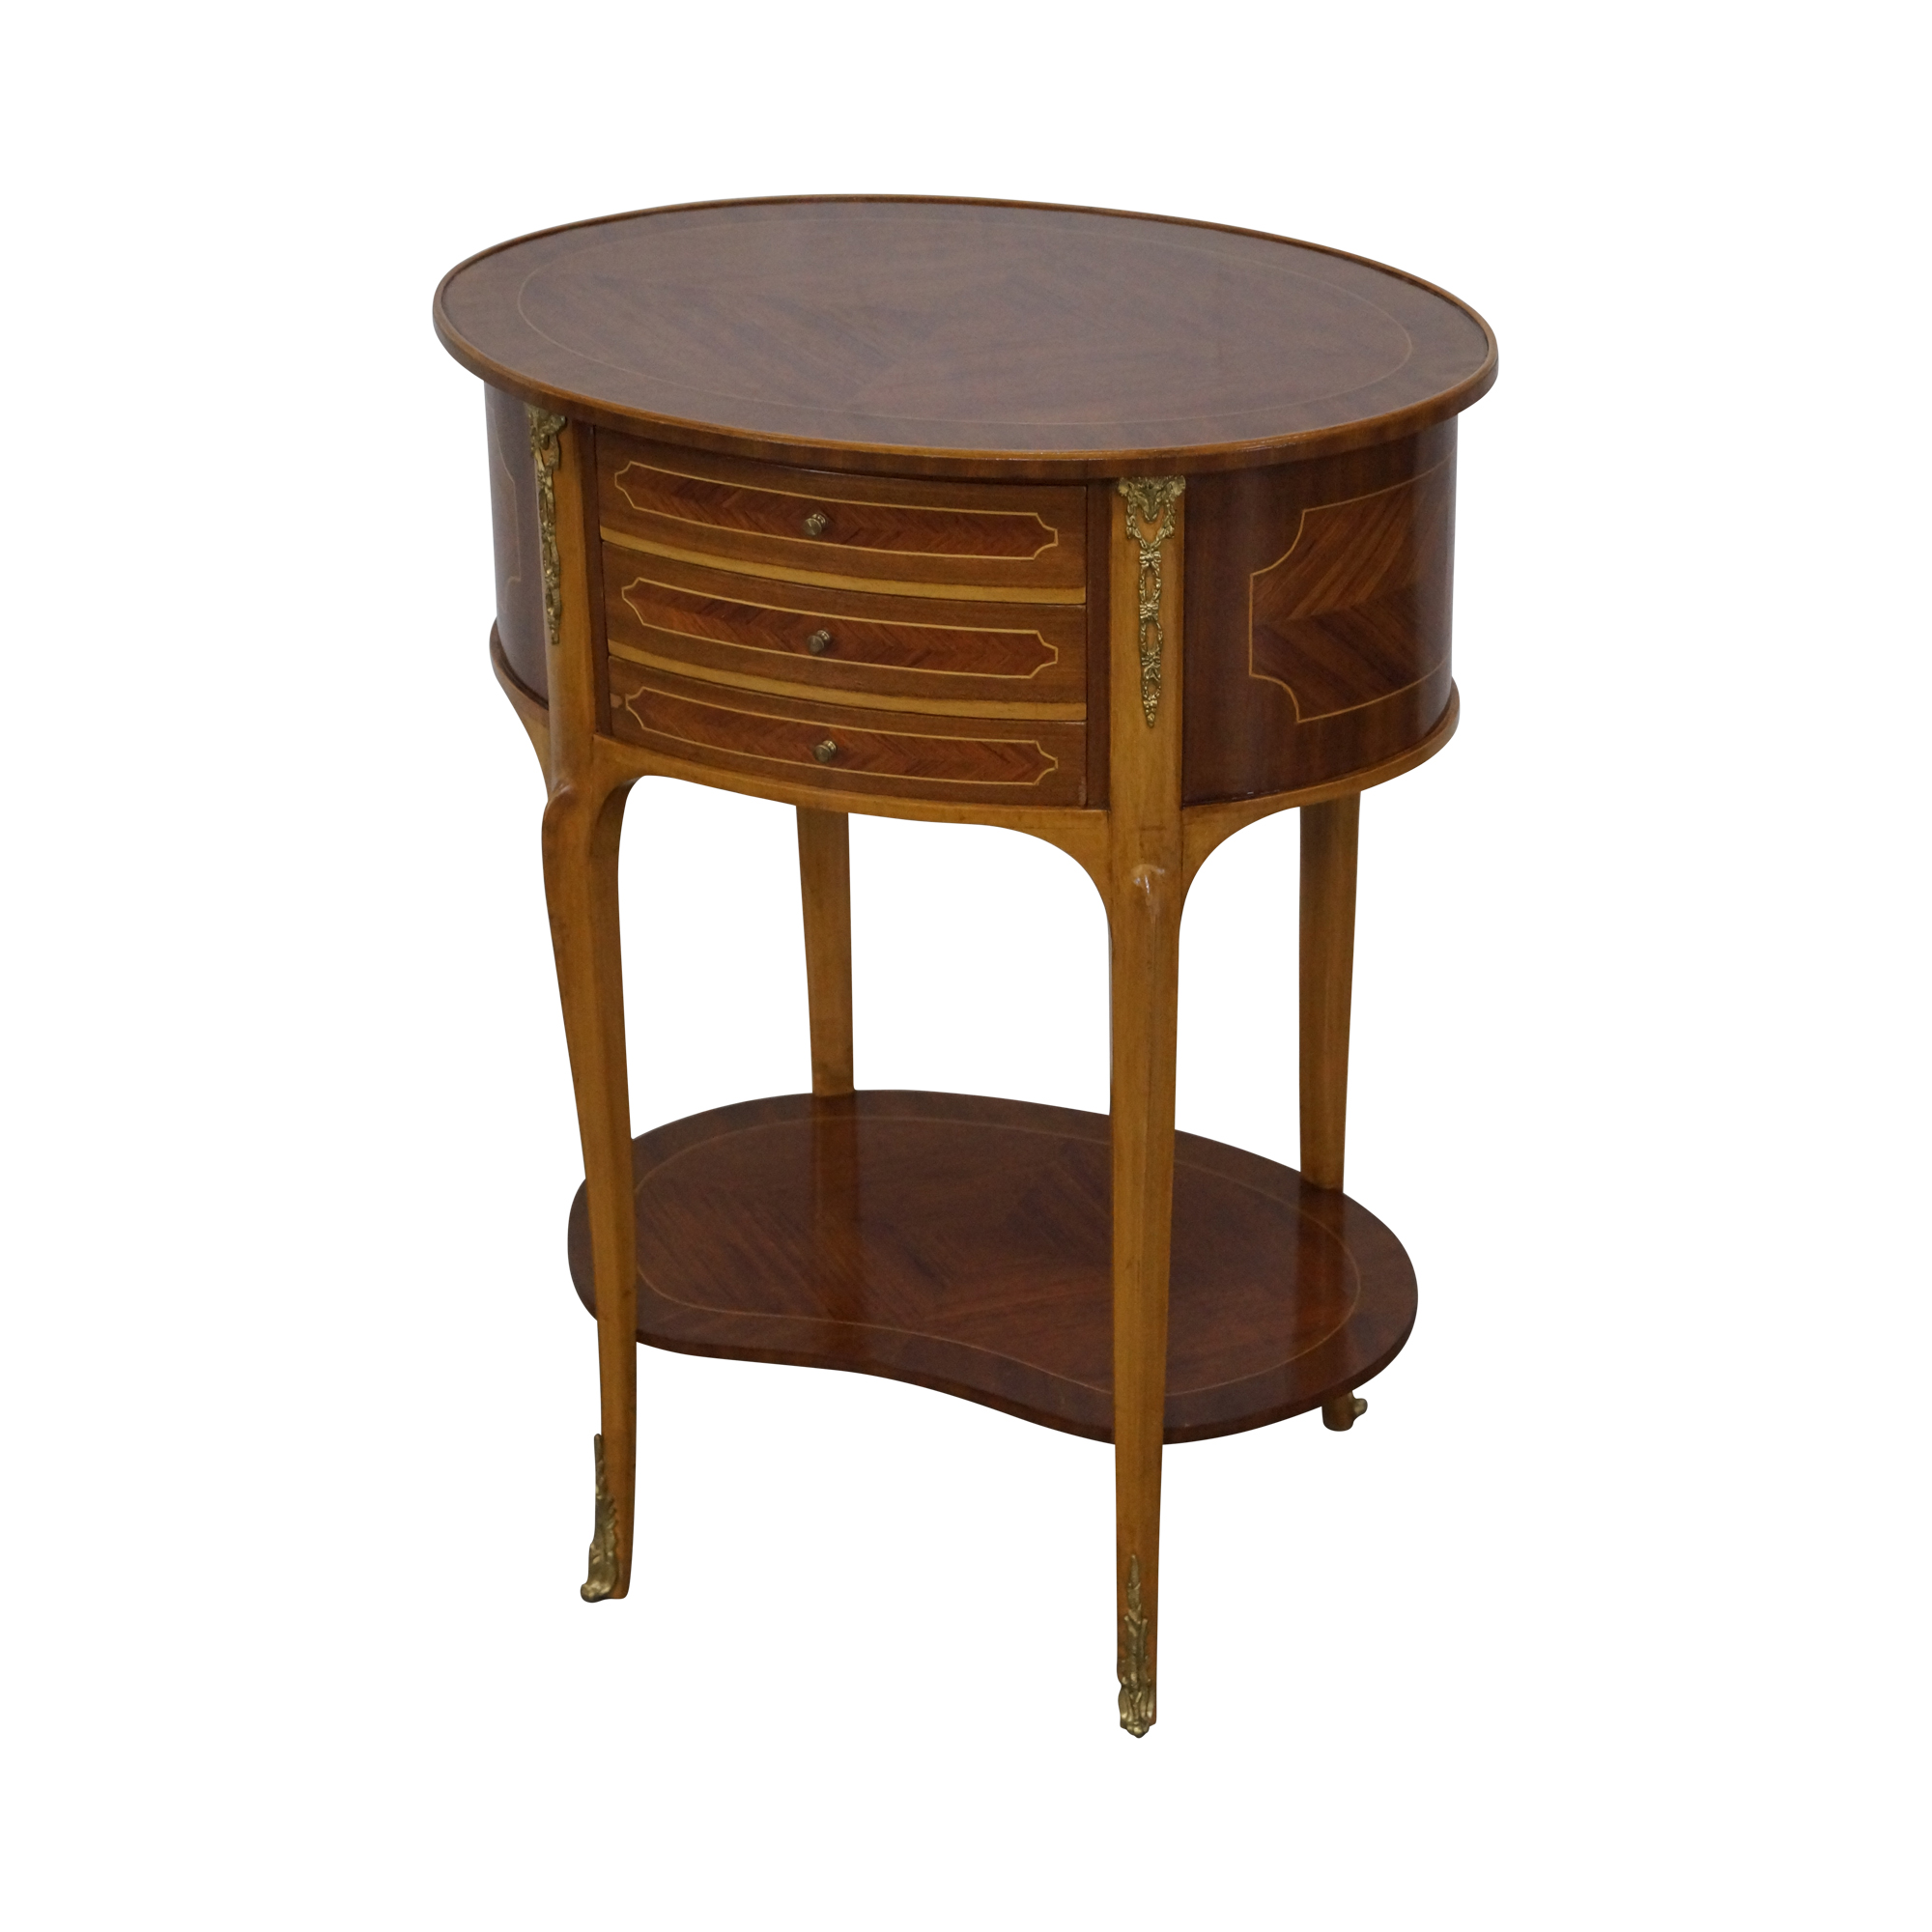 French Louis Xv Style Inlaid Oval Side Table Chairish